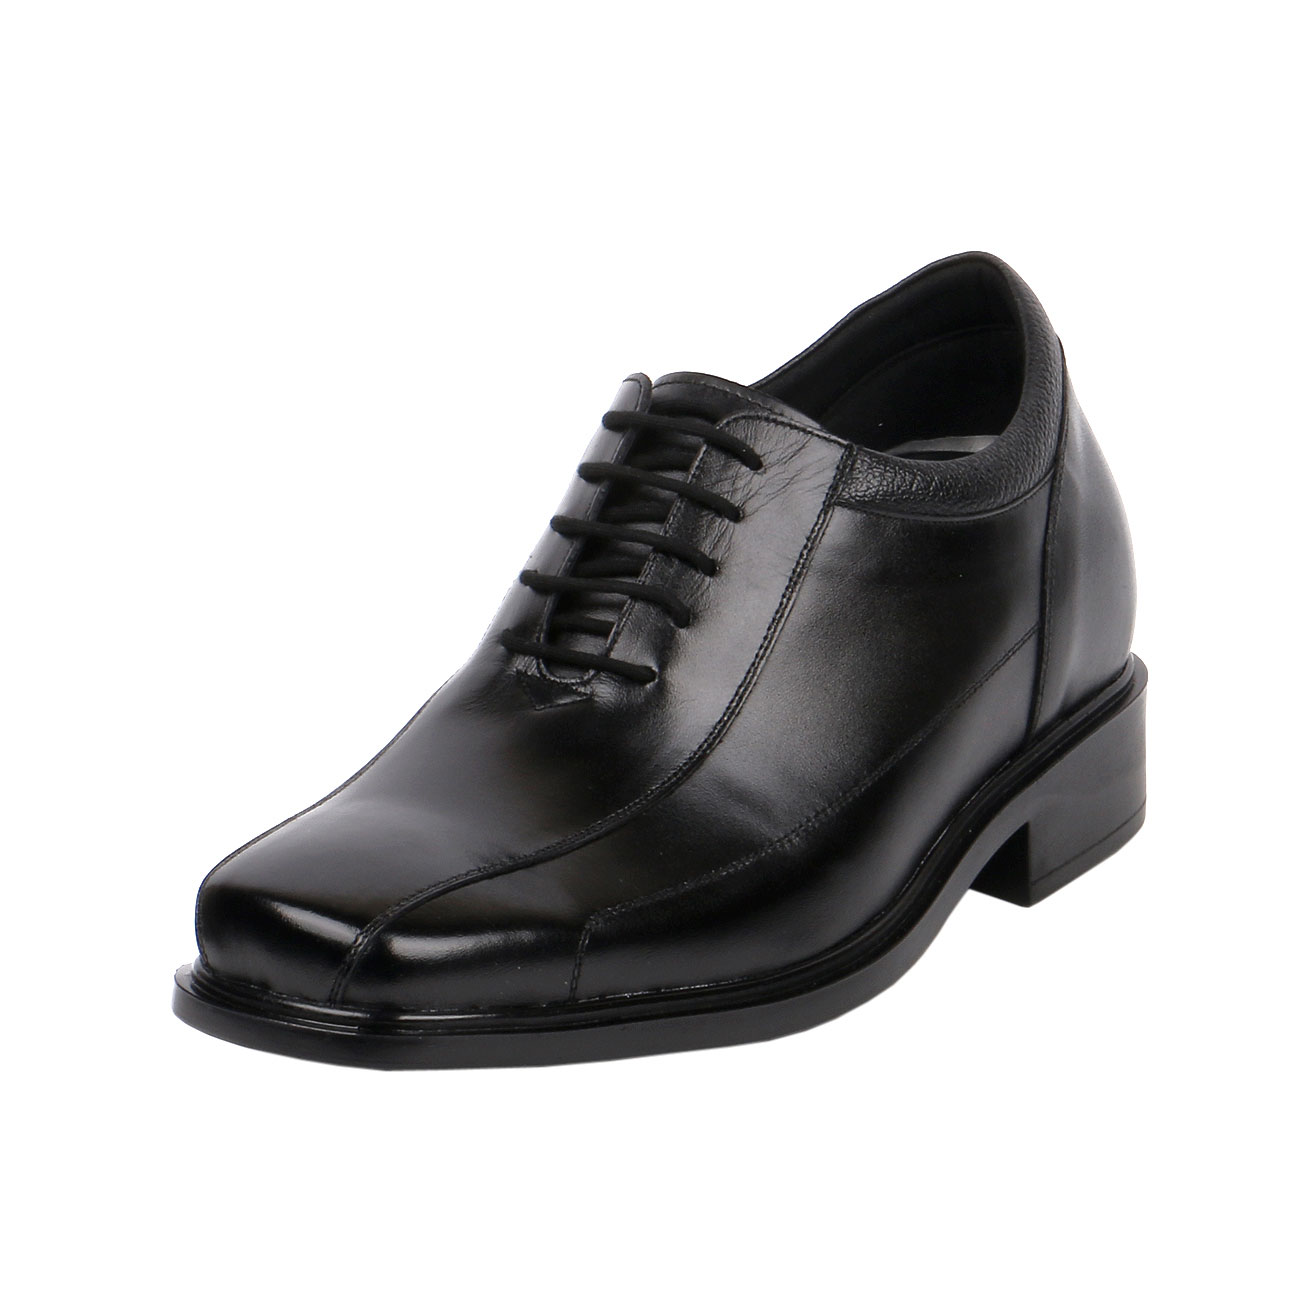 KL603, Comfortable Lightweight Semi Dress Wide Shoe with more Informal Sports Outfits with Unique Bicycle Toe Design, 3 Inch Tall-1